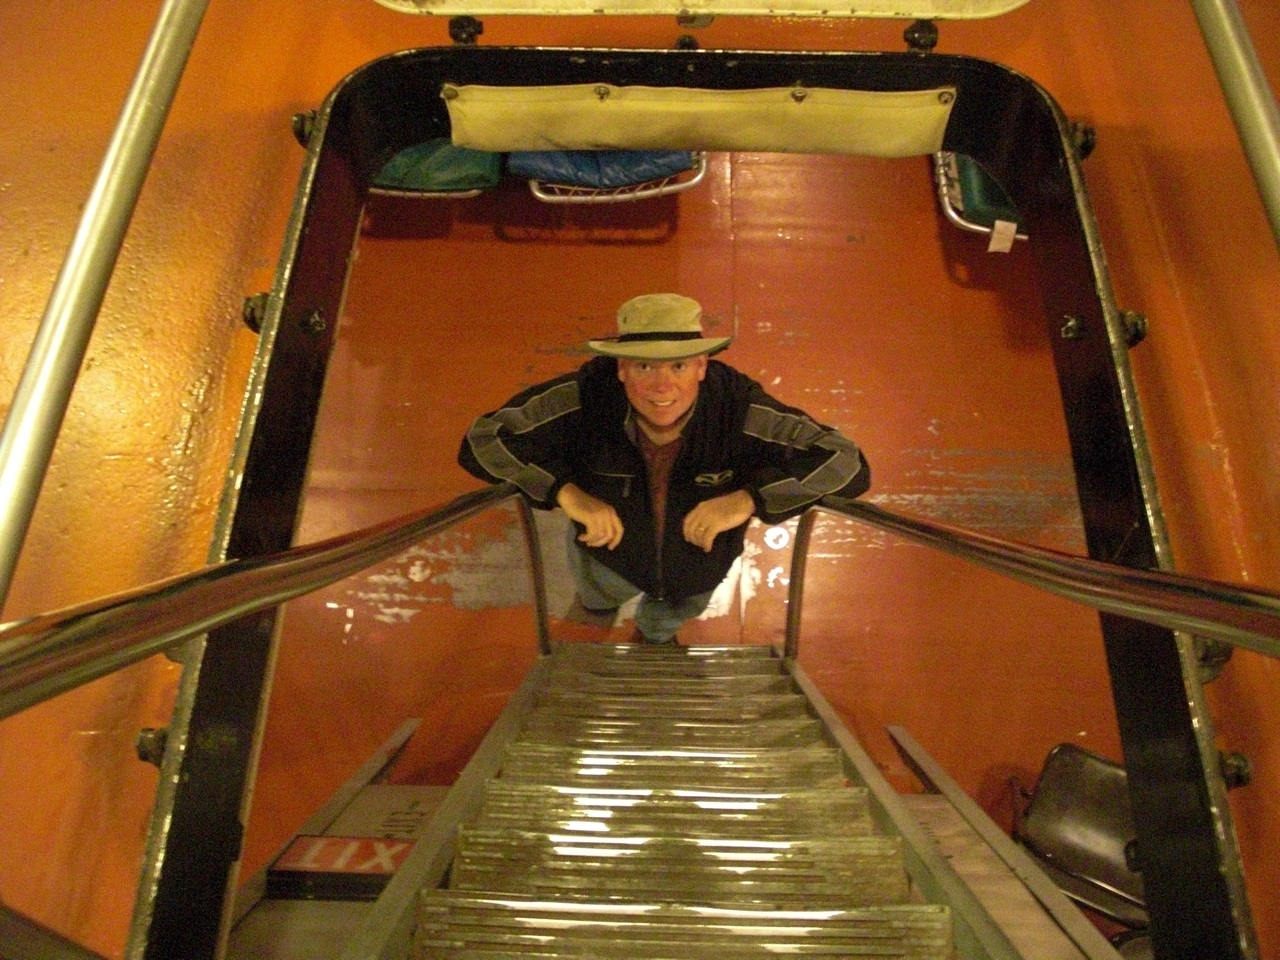 David Down One Level Aboard The USS Alabama. Very Narrow Steps. I Can't Imagine How The Solders Had To Hurry Down The Steps Without Falling.